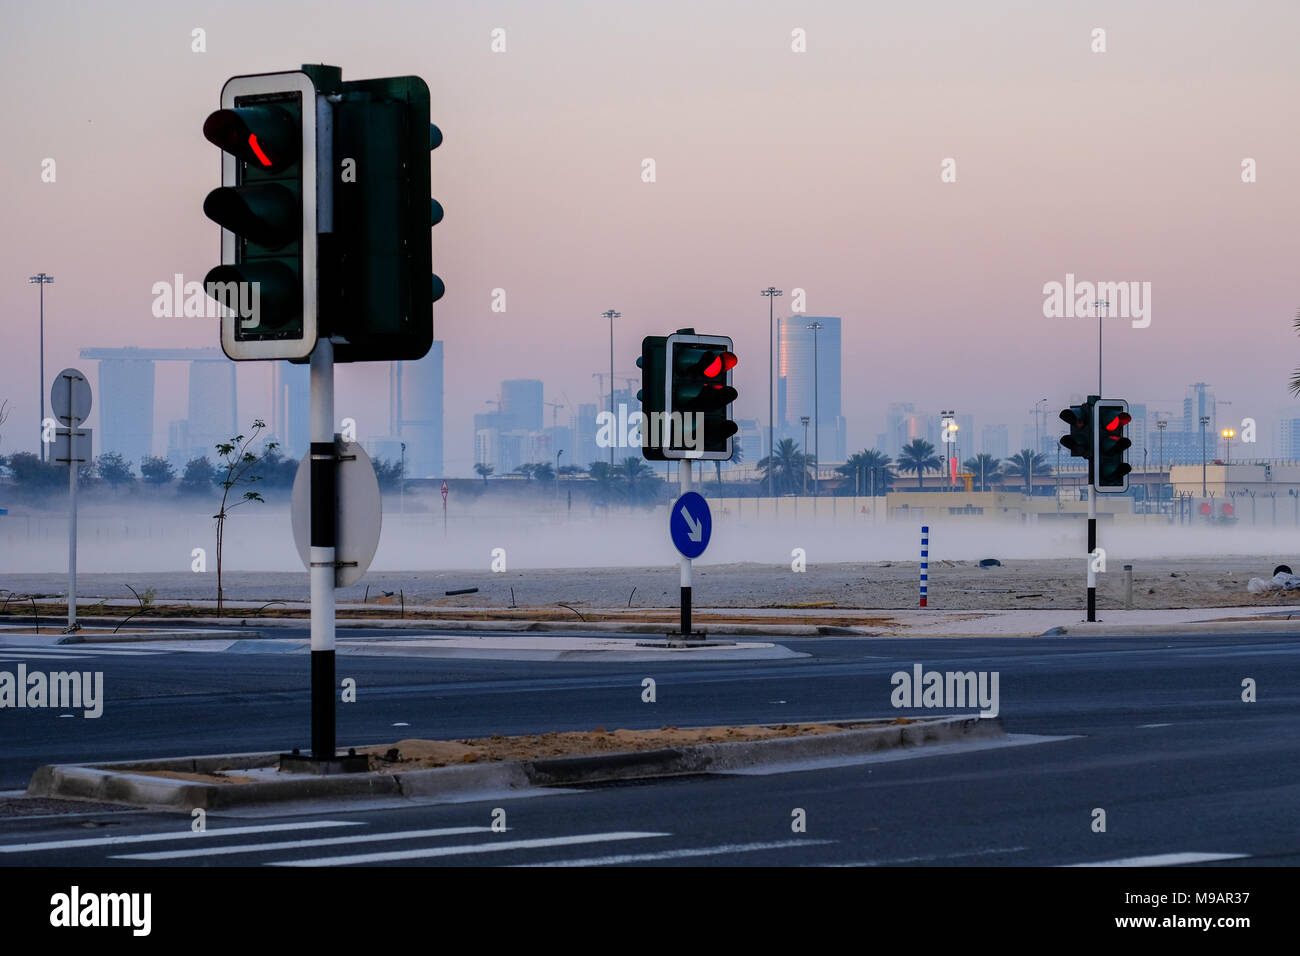 Traffic light posts, captured in a mysty morning with City buildings in a distance, Abu Dhabi, UAE. - Stock Image